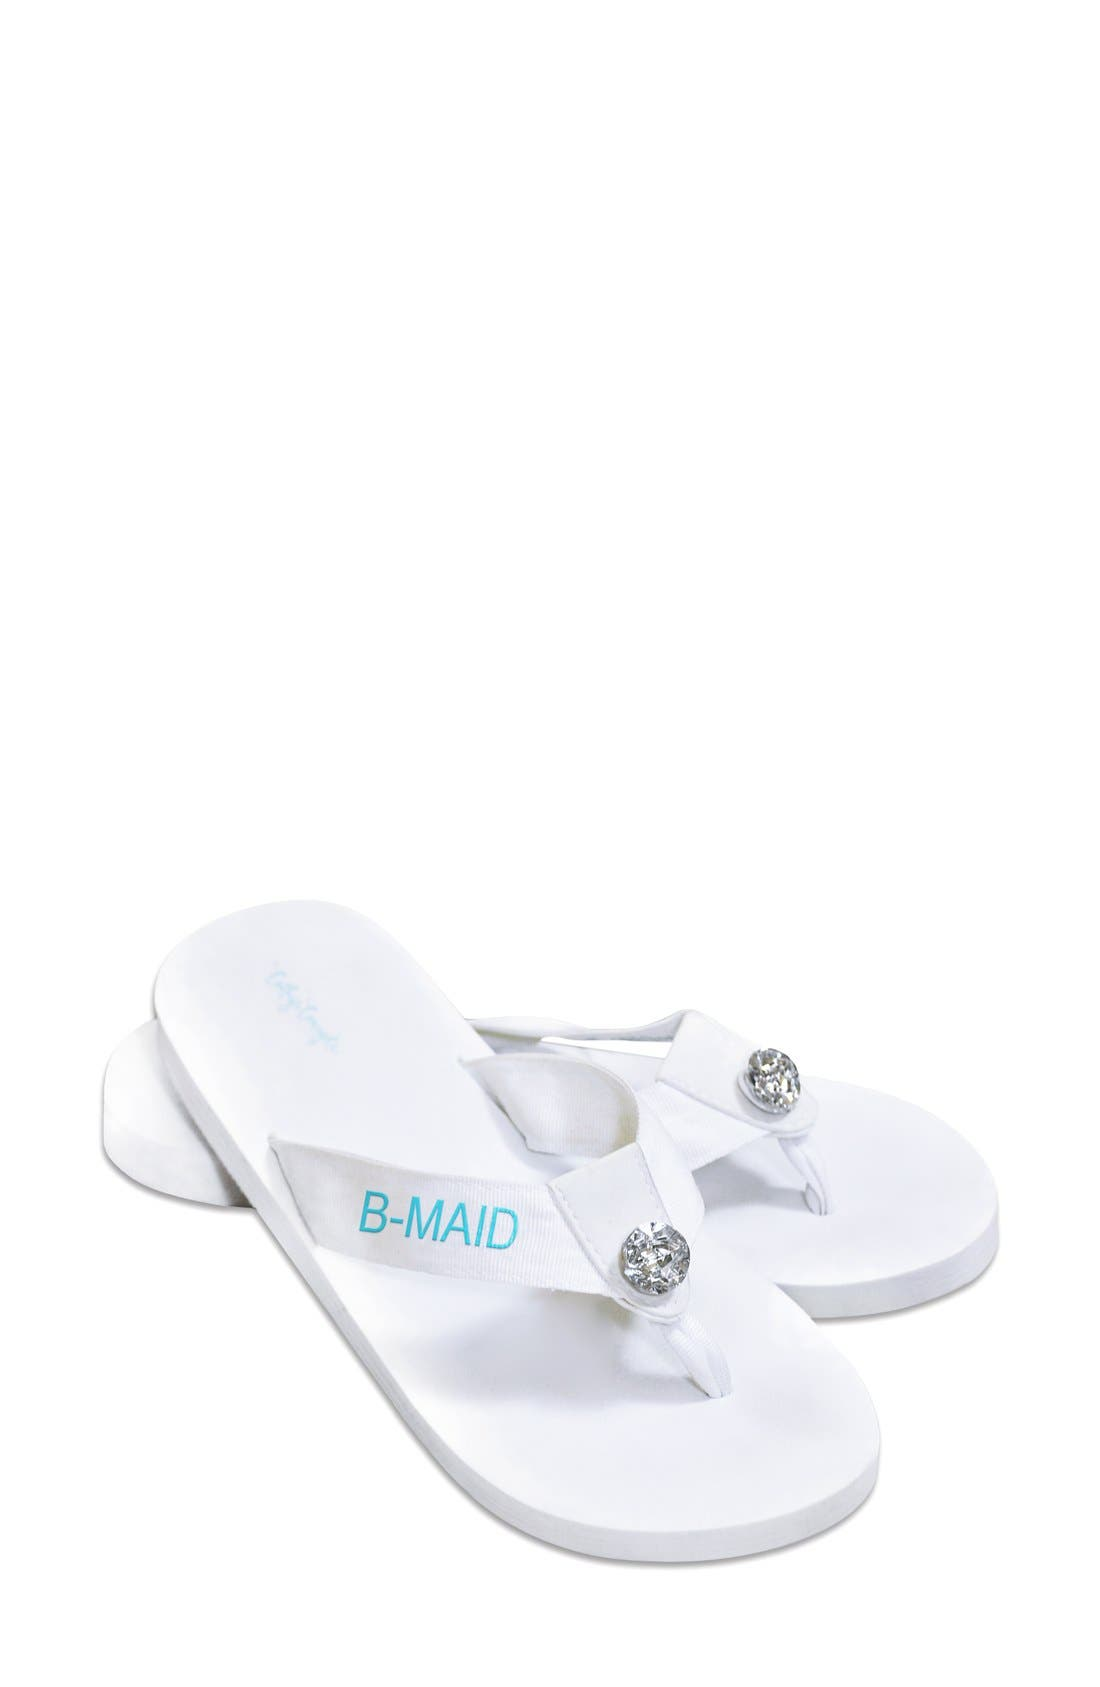 Main Image - Cathy's Concepts 'Bridesmaid' Personalized Flip Flops